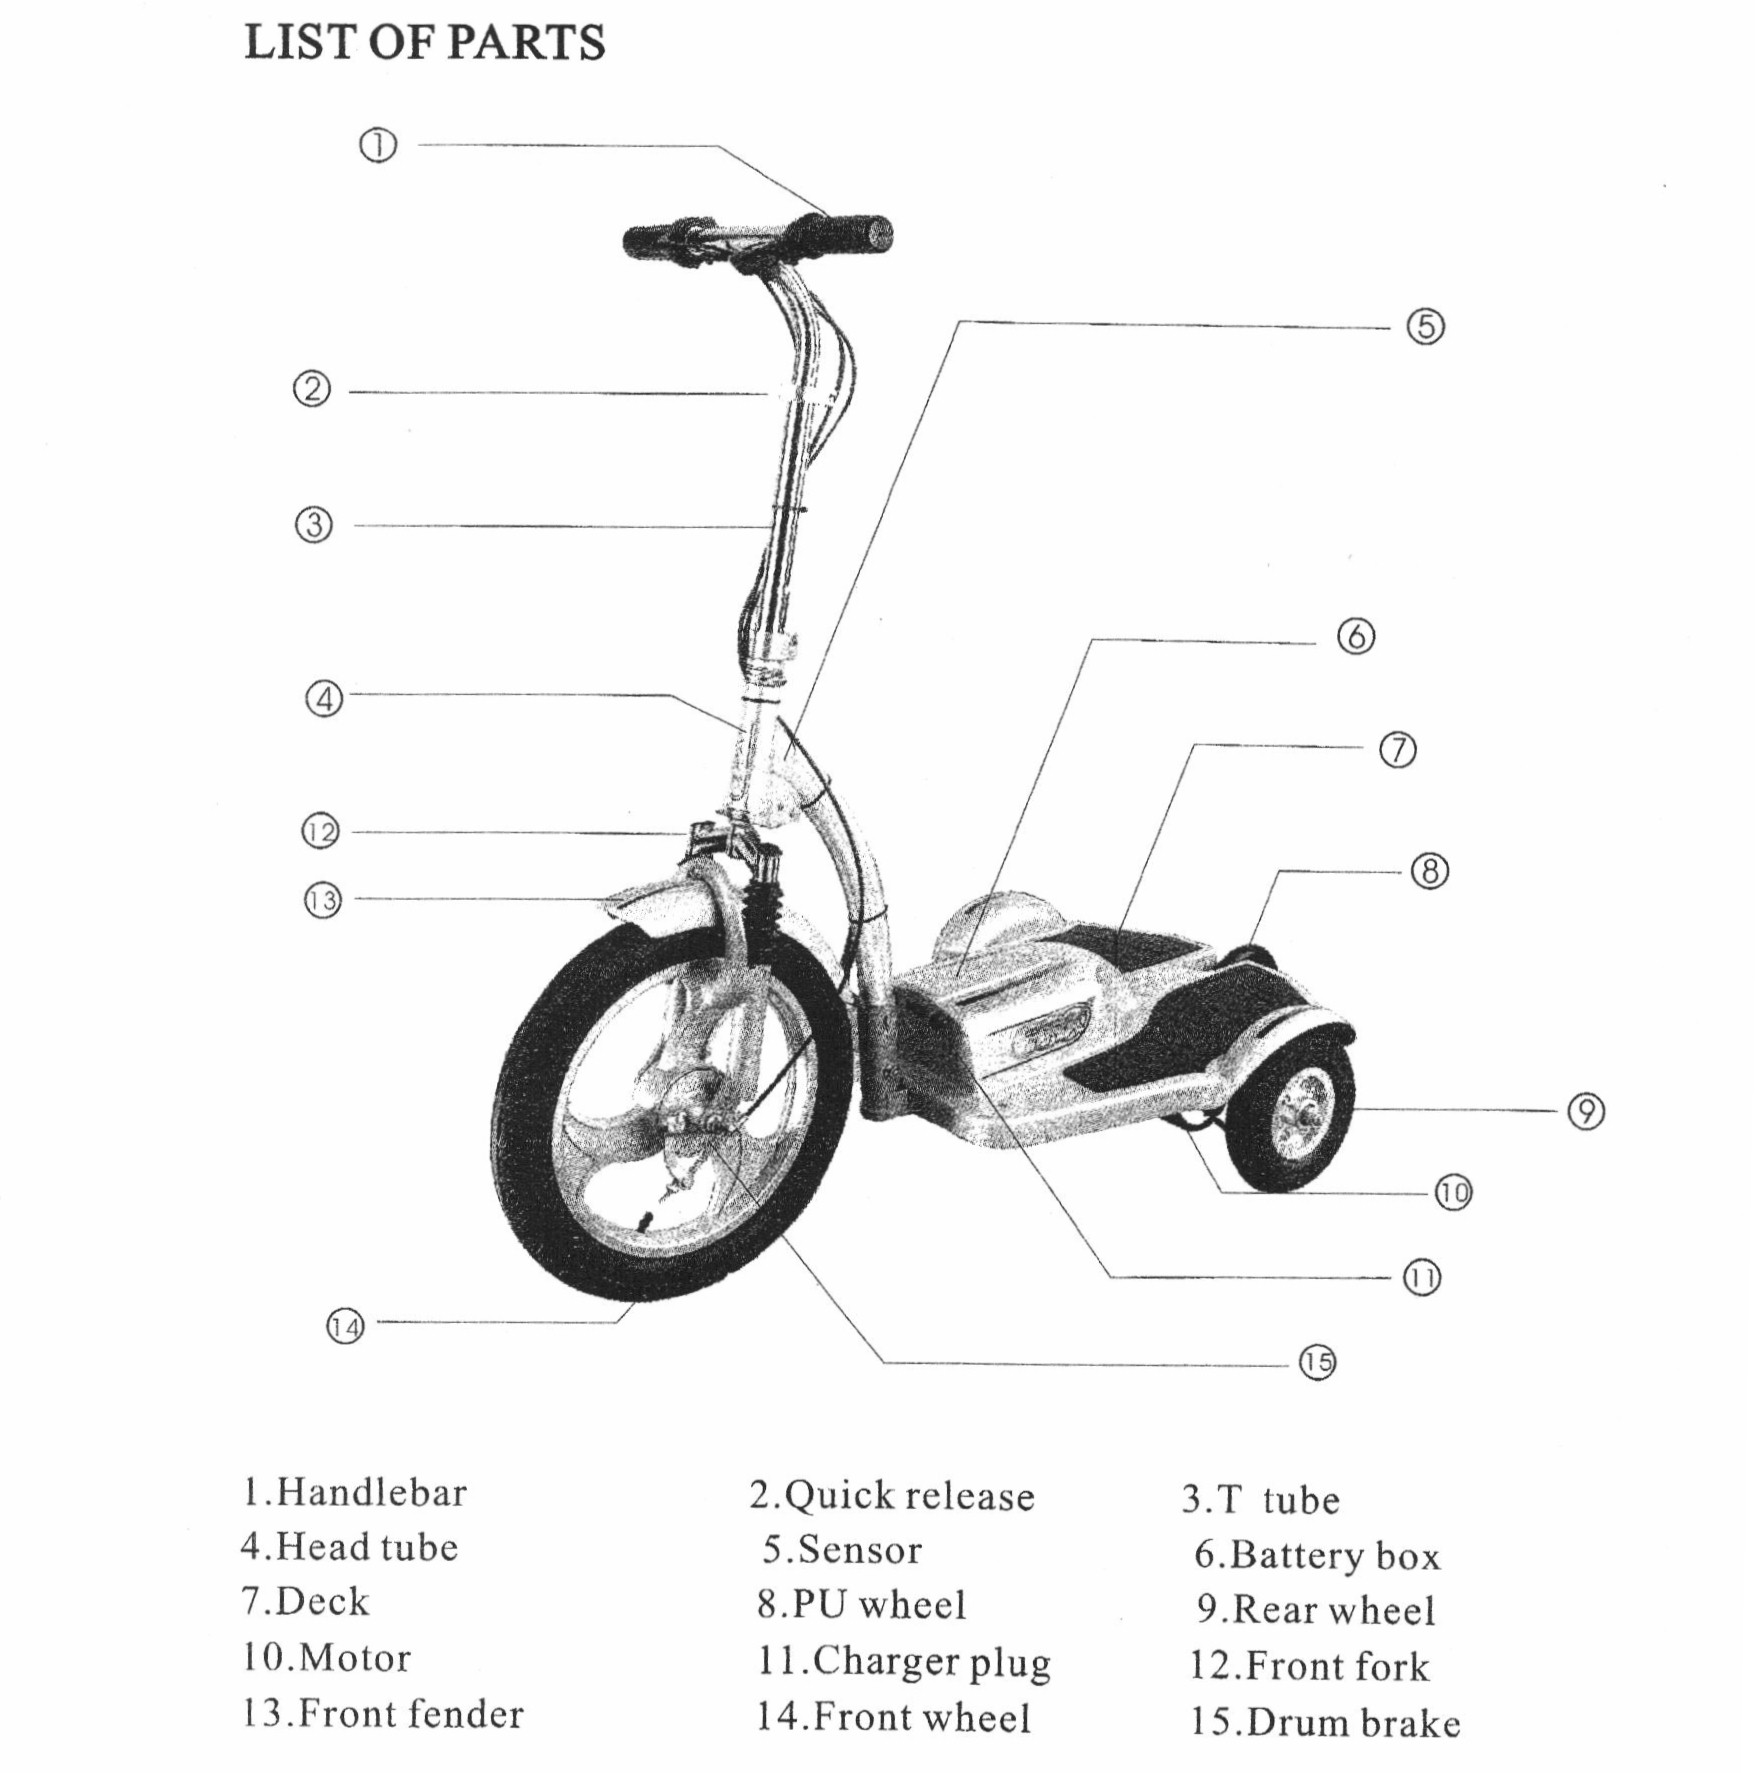 Trx Scooter 36 Volt Wiring Diagram Diy Diagrams Yamaha Golf Cart Product Manuals Rh Rightonrideons Com Club Car